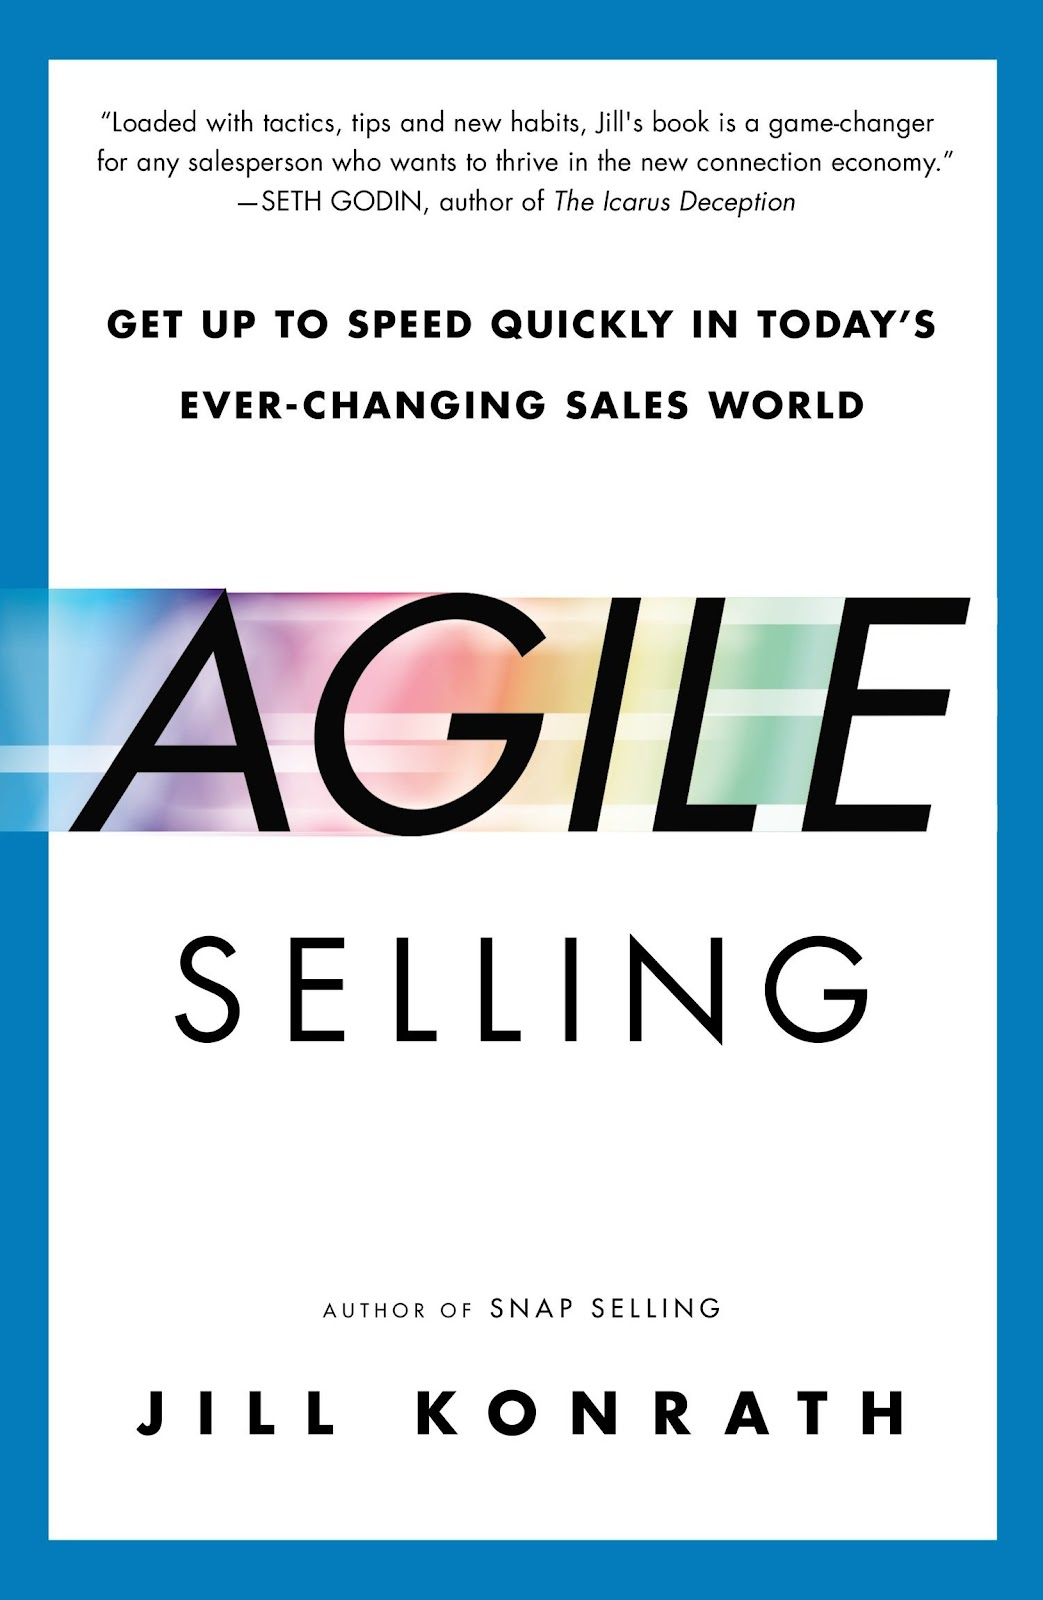 Agile Selling sales book.